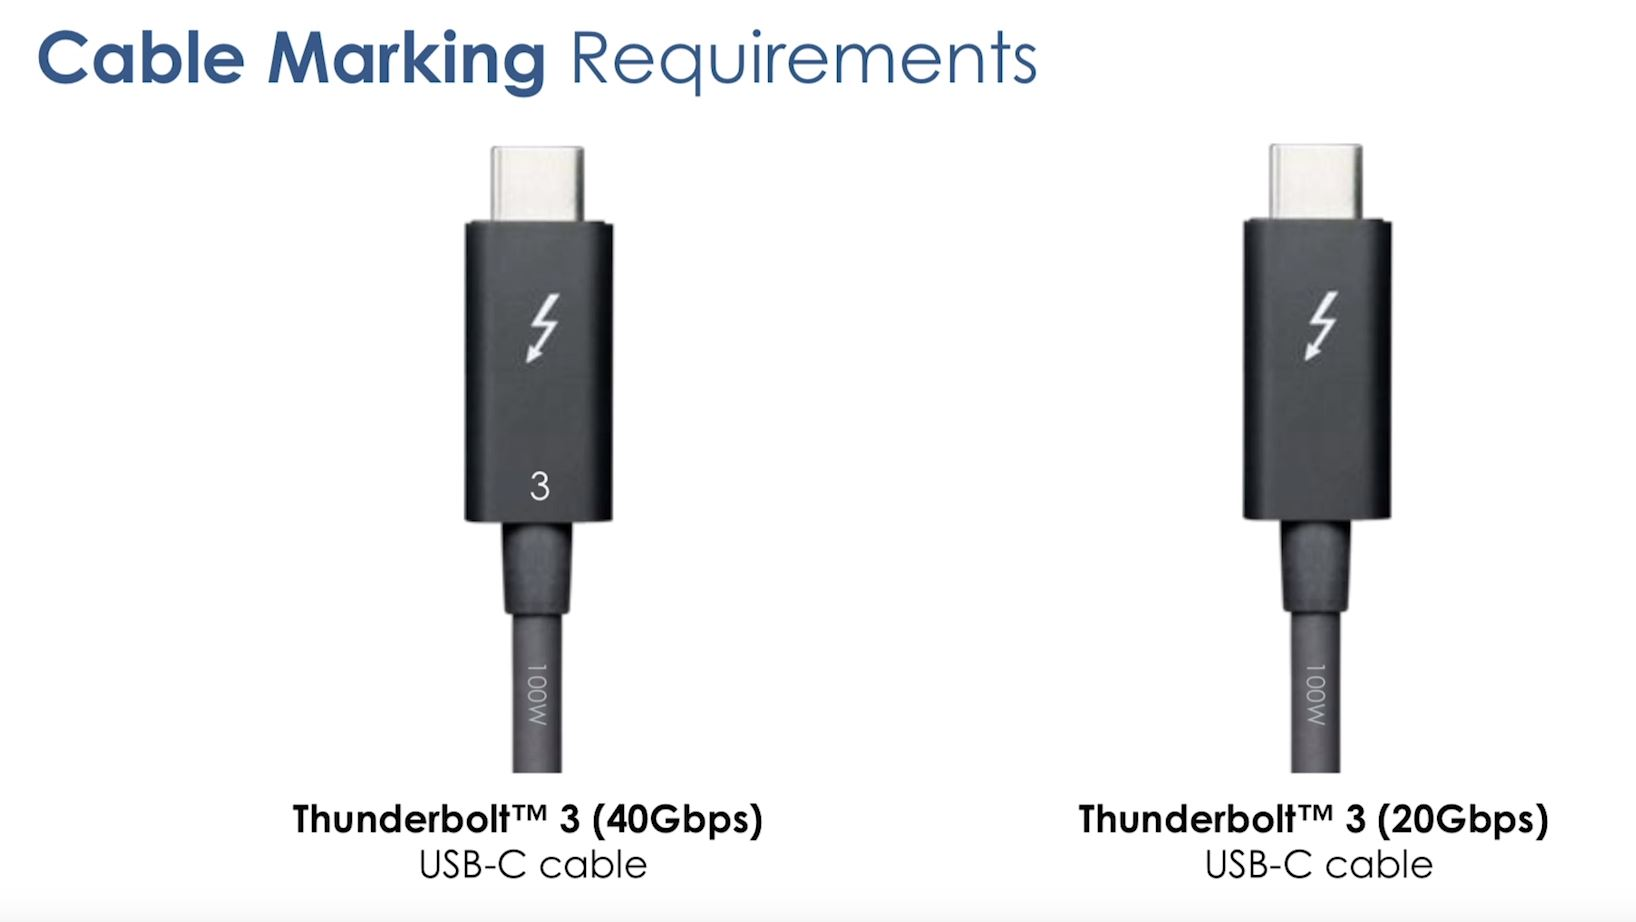 Thunderbolt_3_cable_marking_requirements.jpg